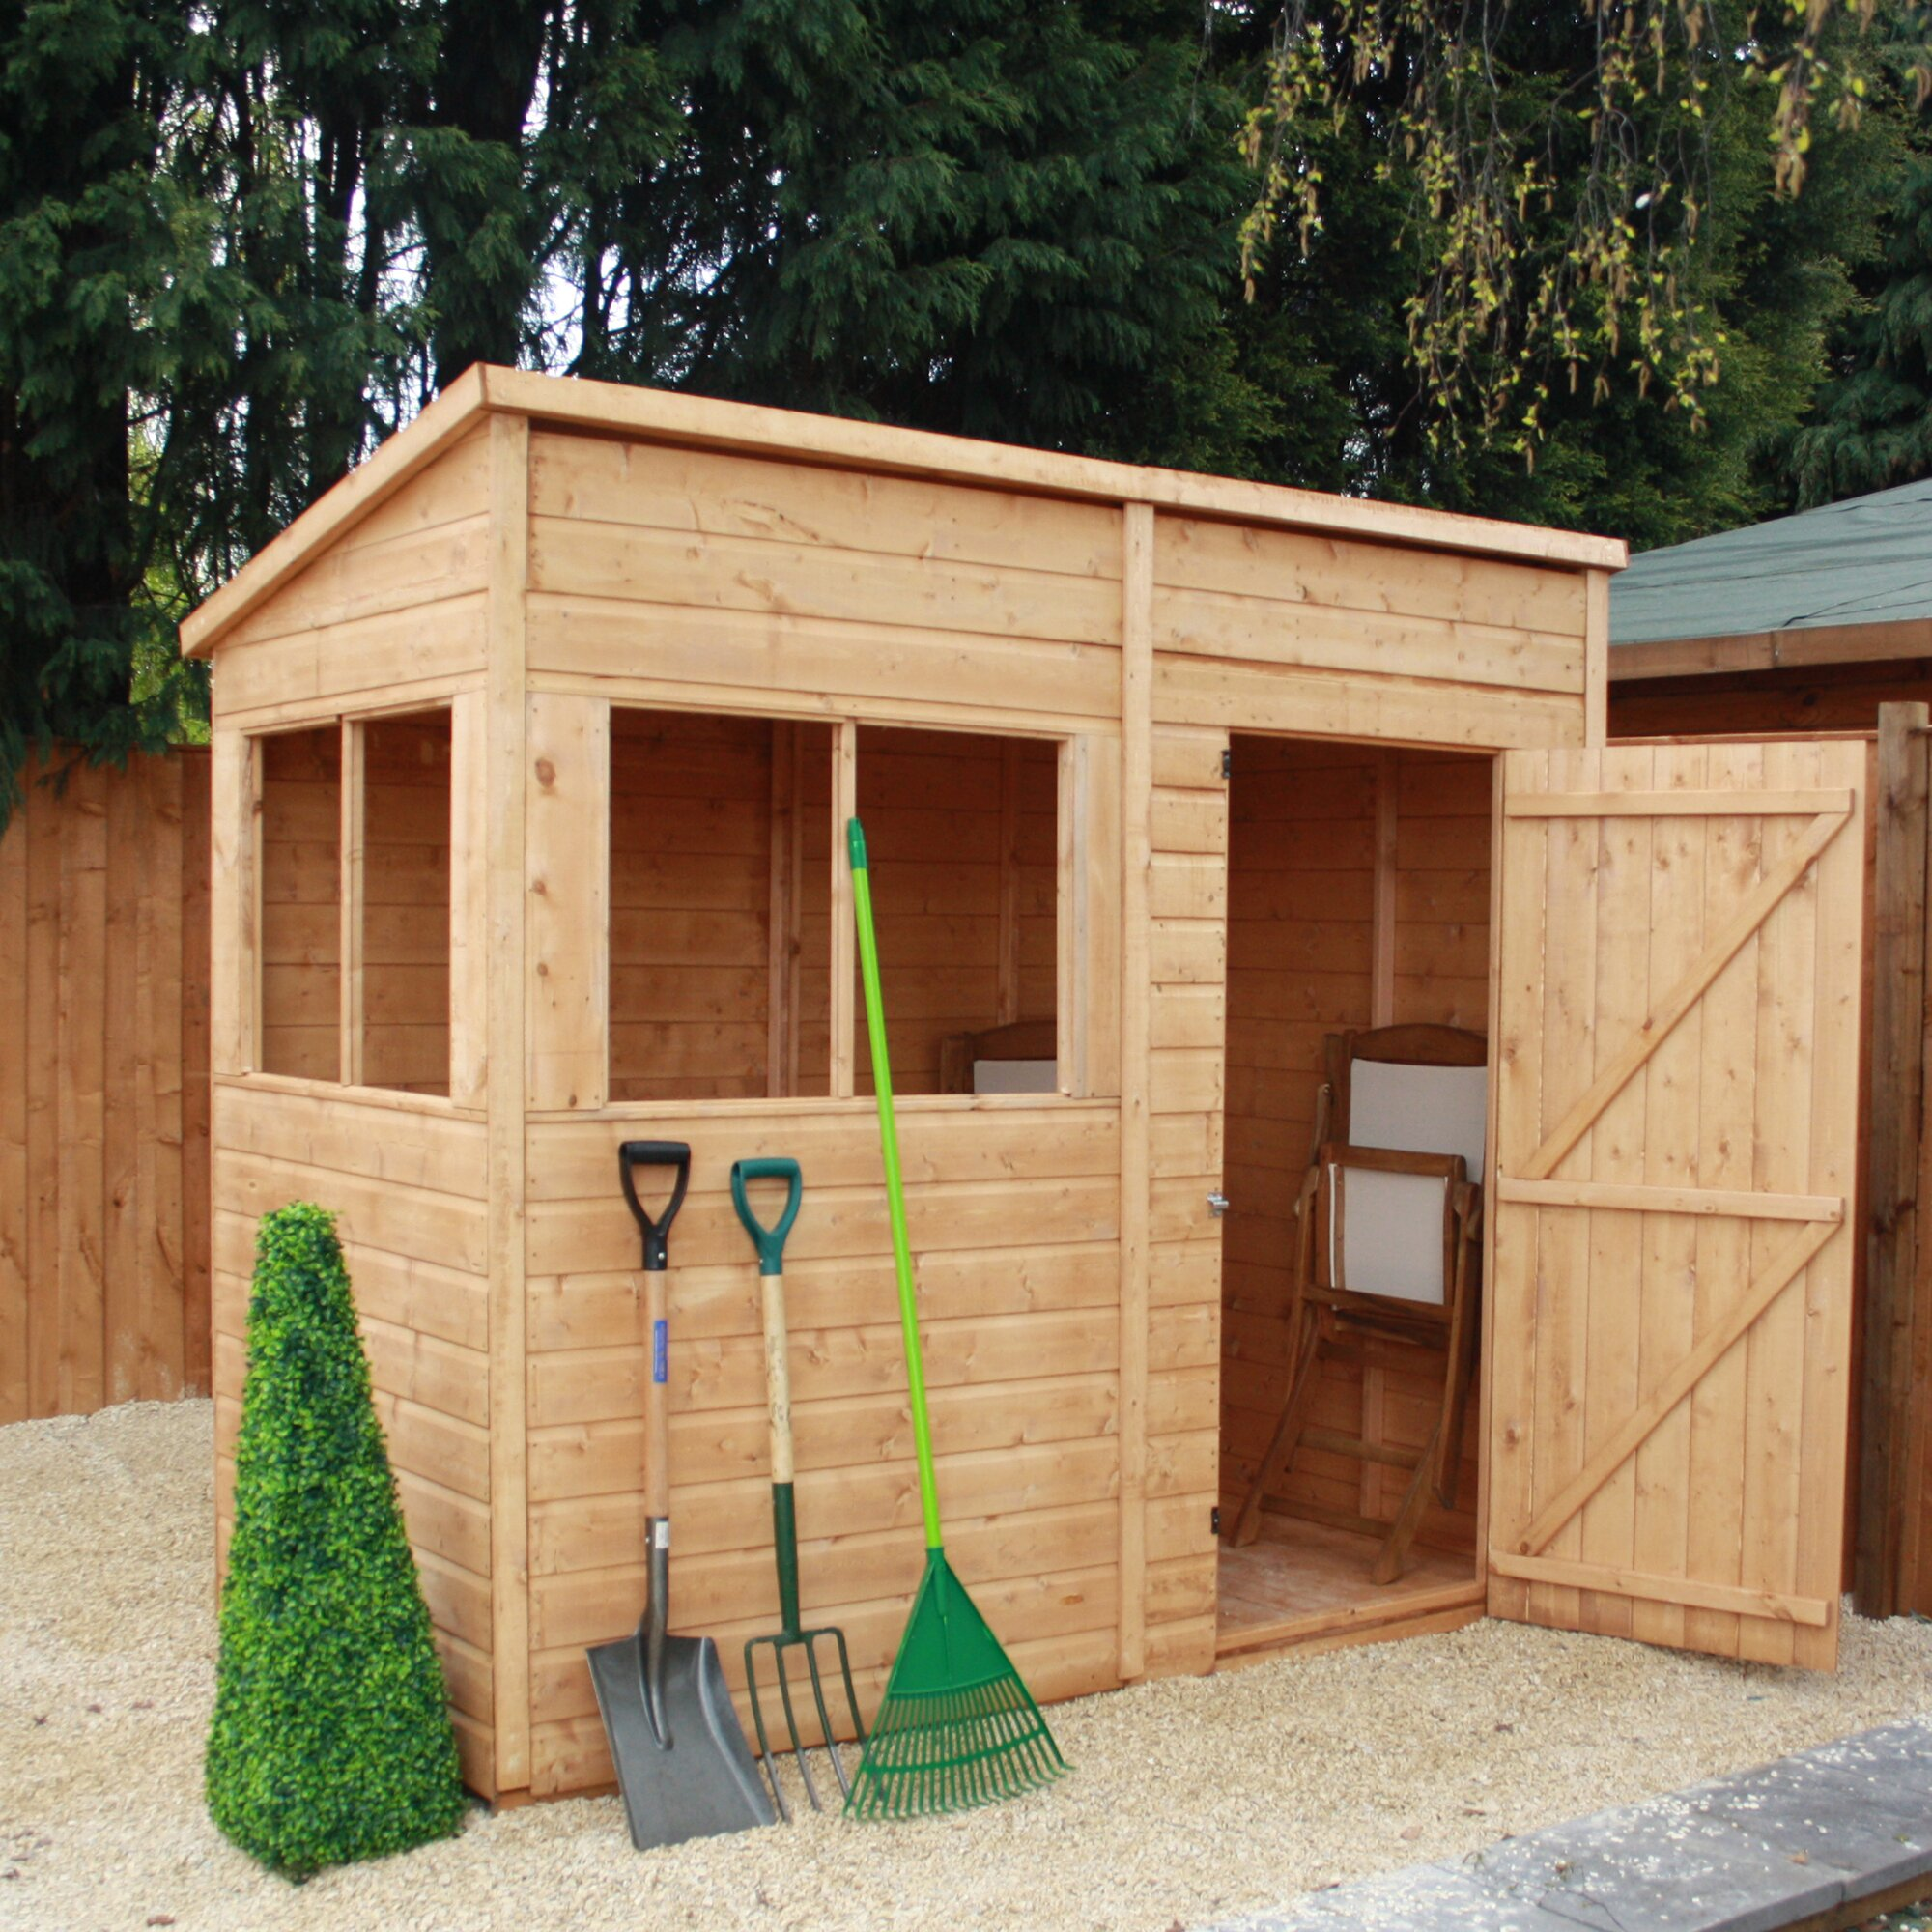 Cheapest Wooden Garden Sheds Uk jkhdpwhhcom